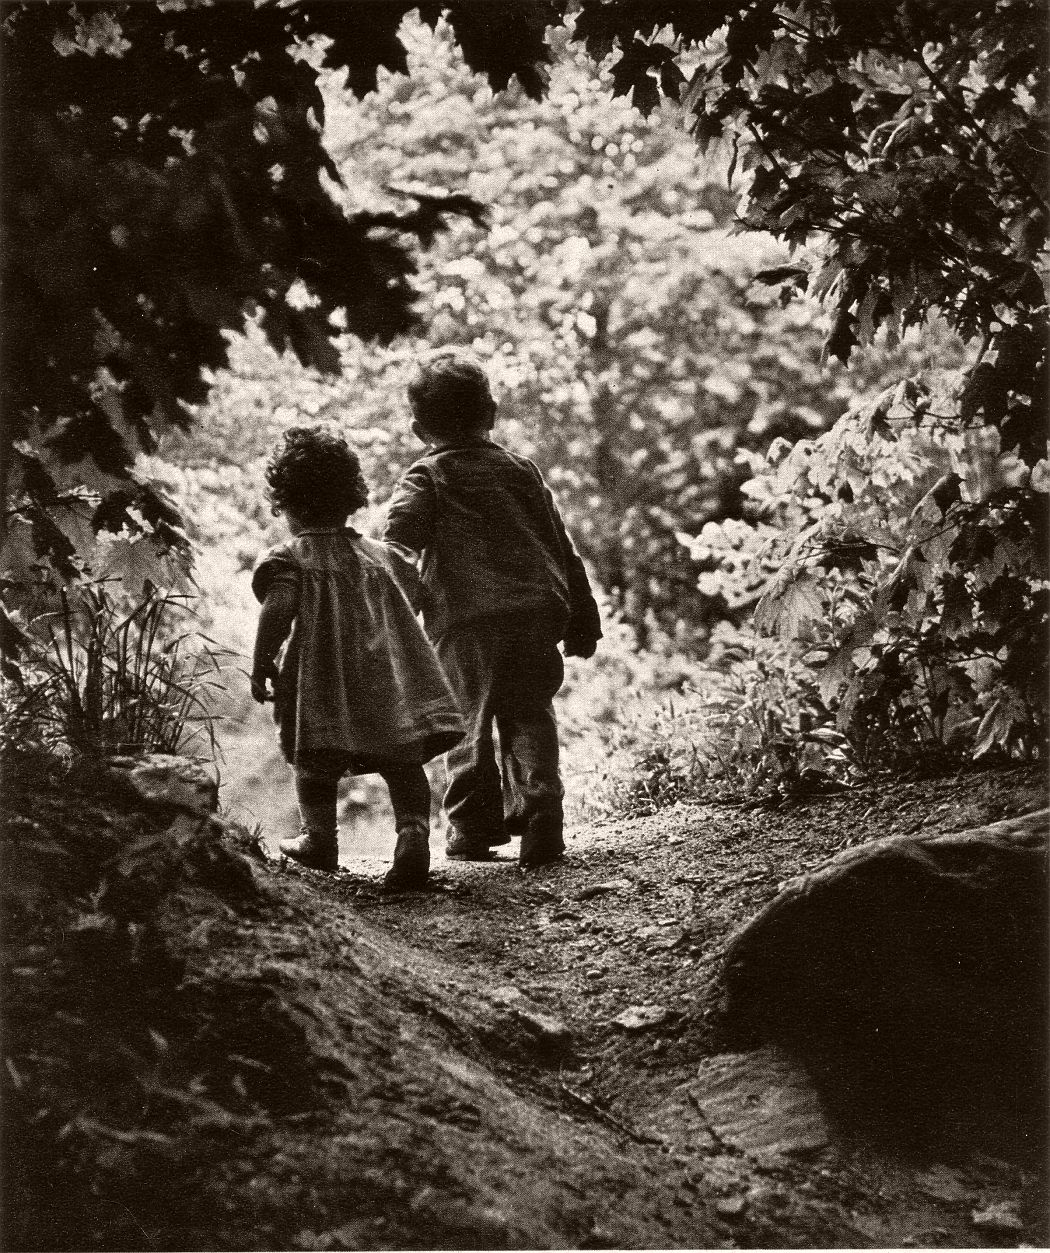 A Walk To The Paradise Garden, 1946 by Eugene Smith